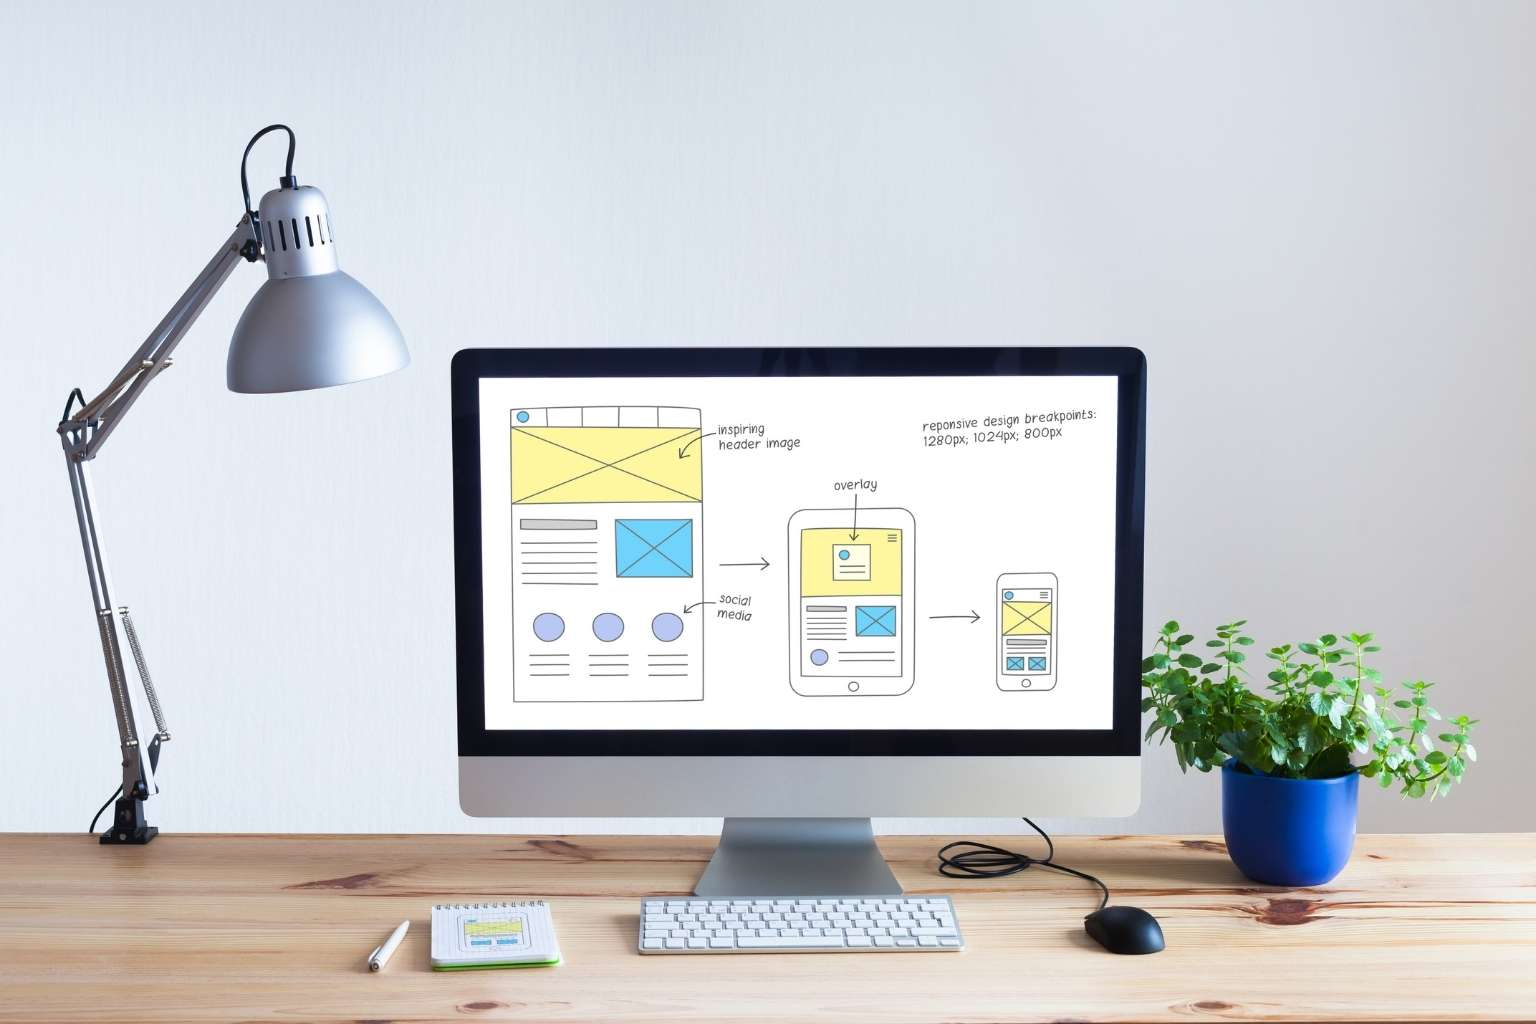 6 Types of Visuals to Include in Your Blog for Better UX and Rankings